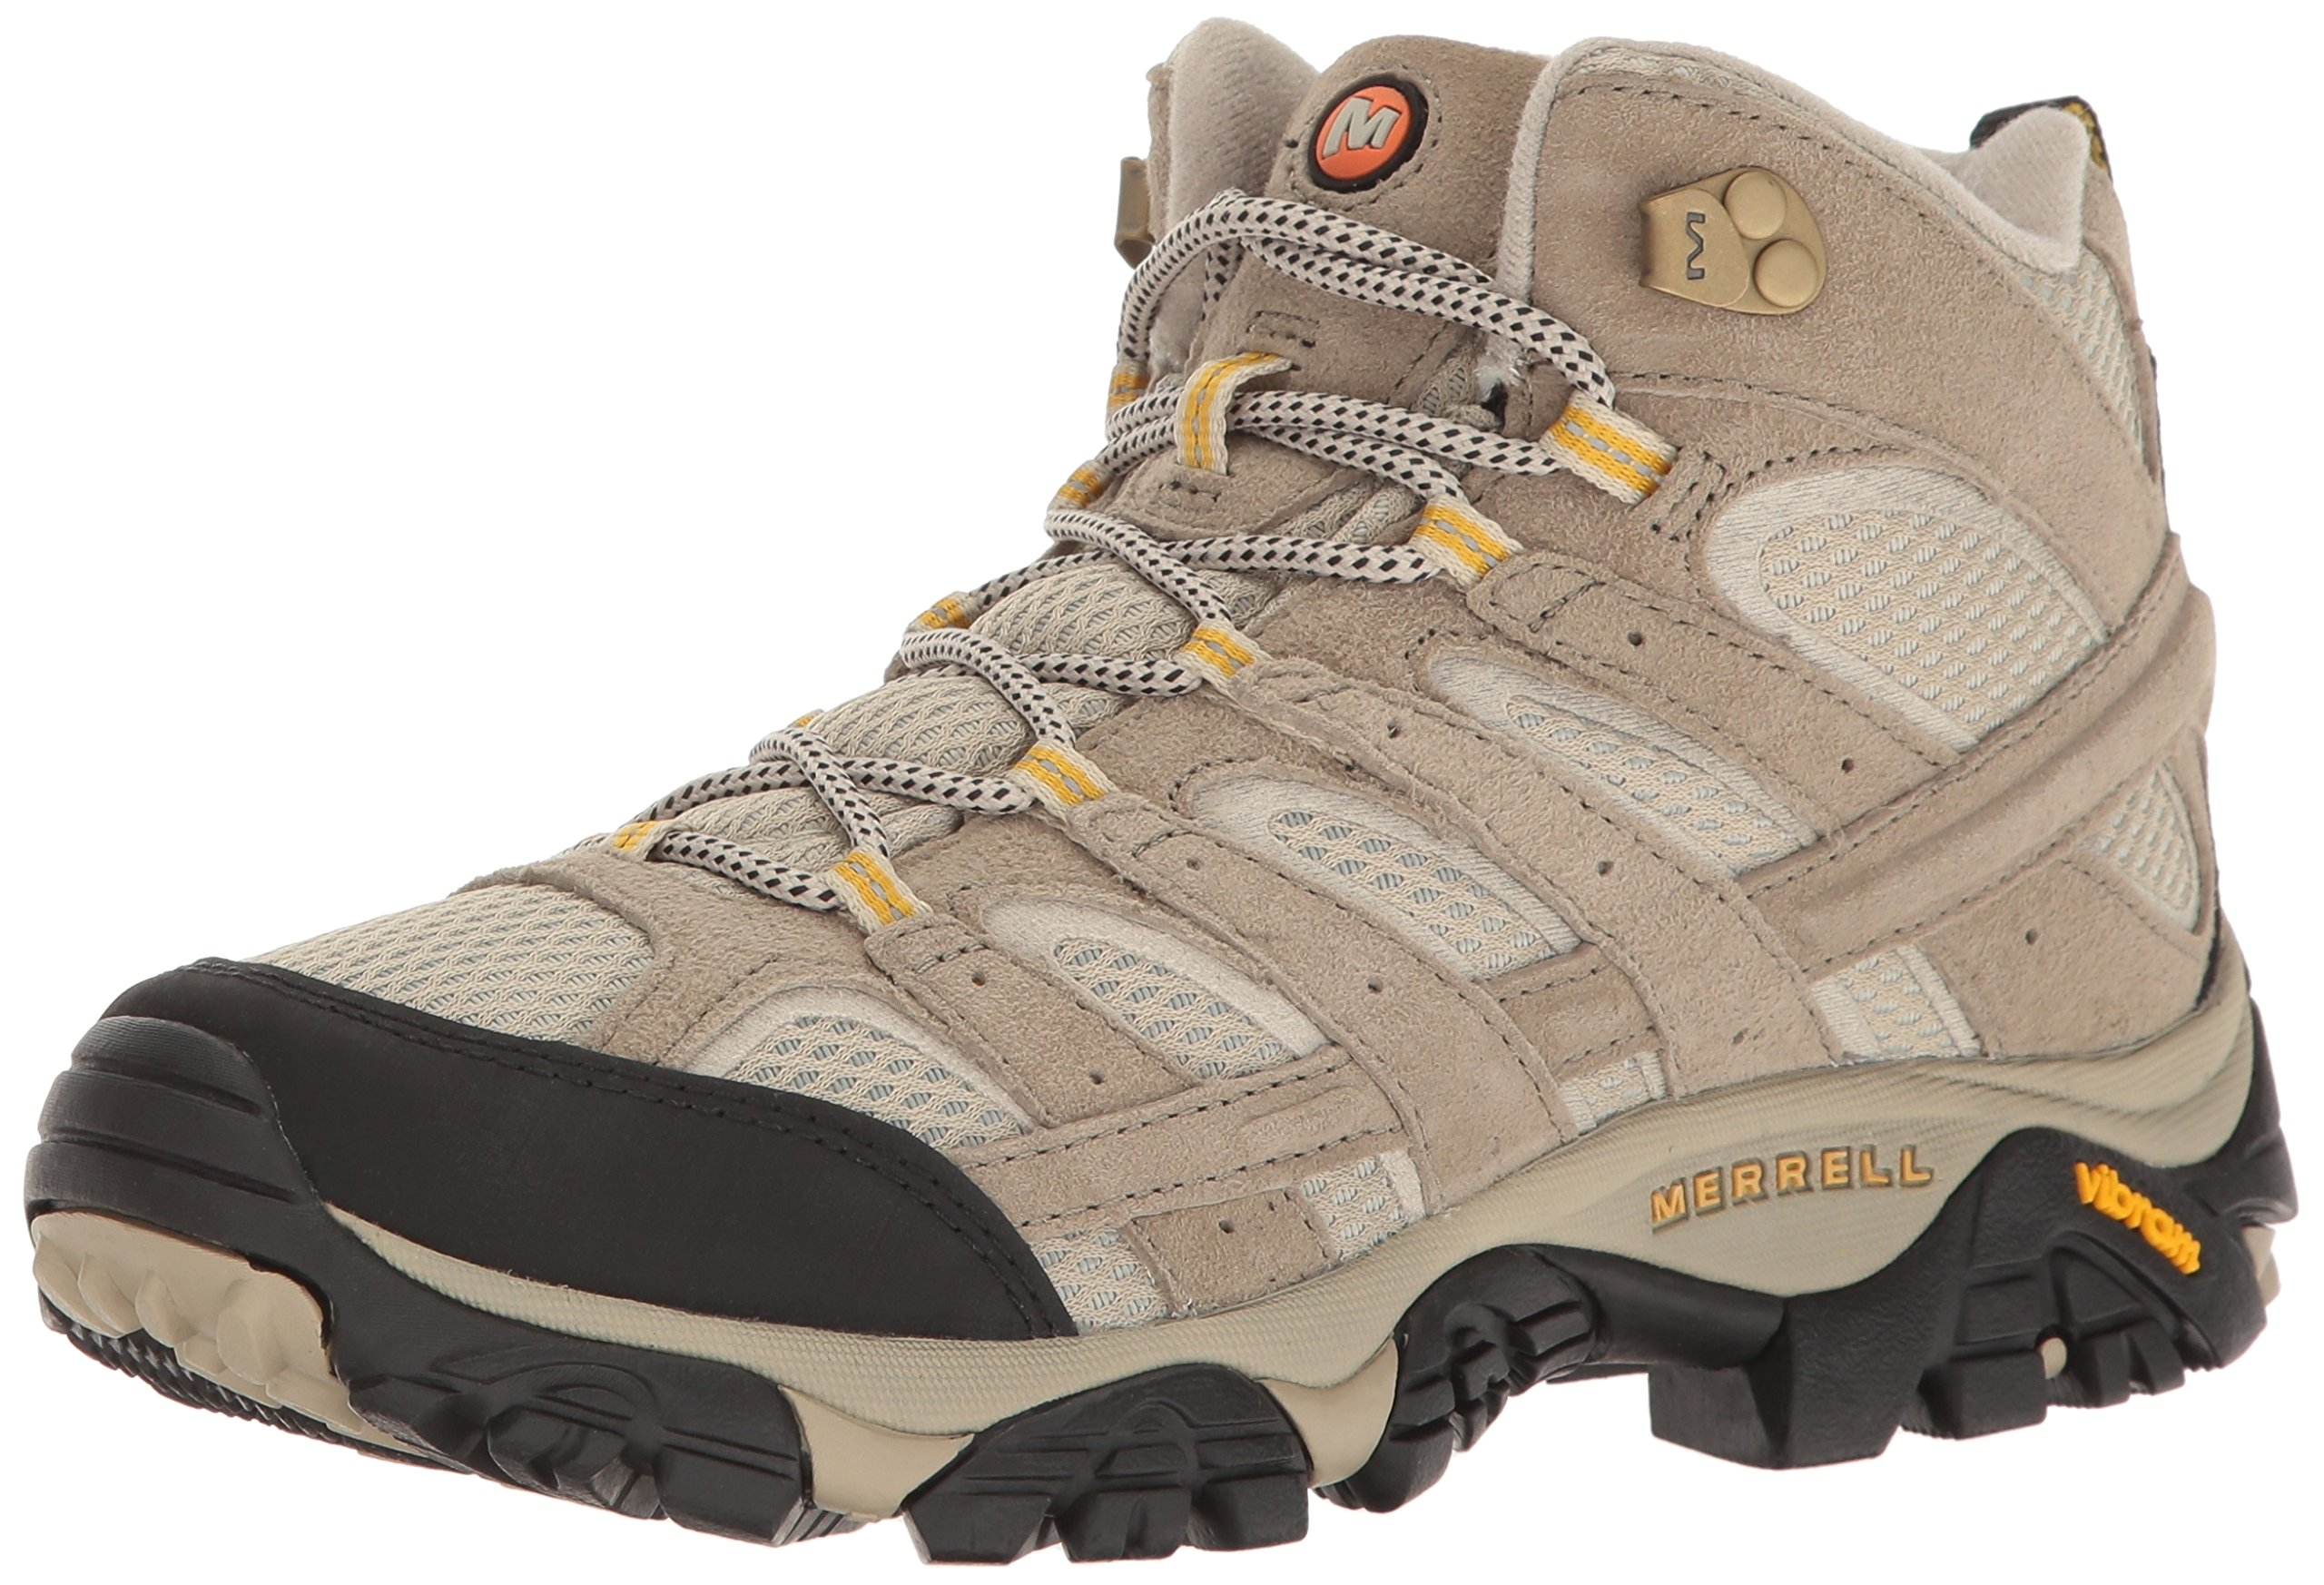 Merrell Women's Moab 2 Vent Mid Hiking Boot, Taupe, 6.5 W US by Merrell